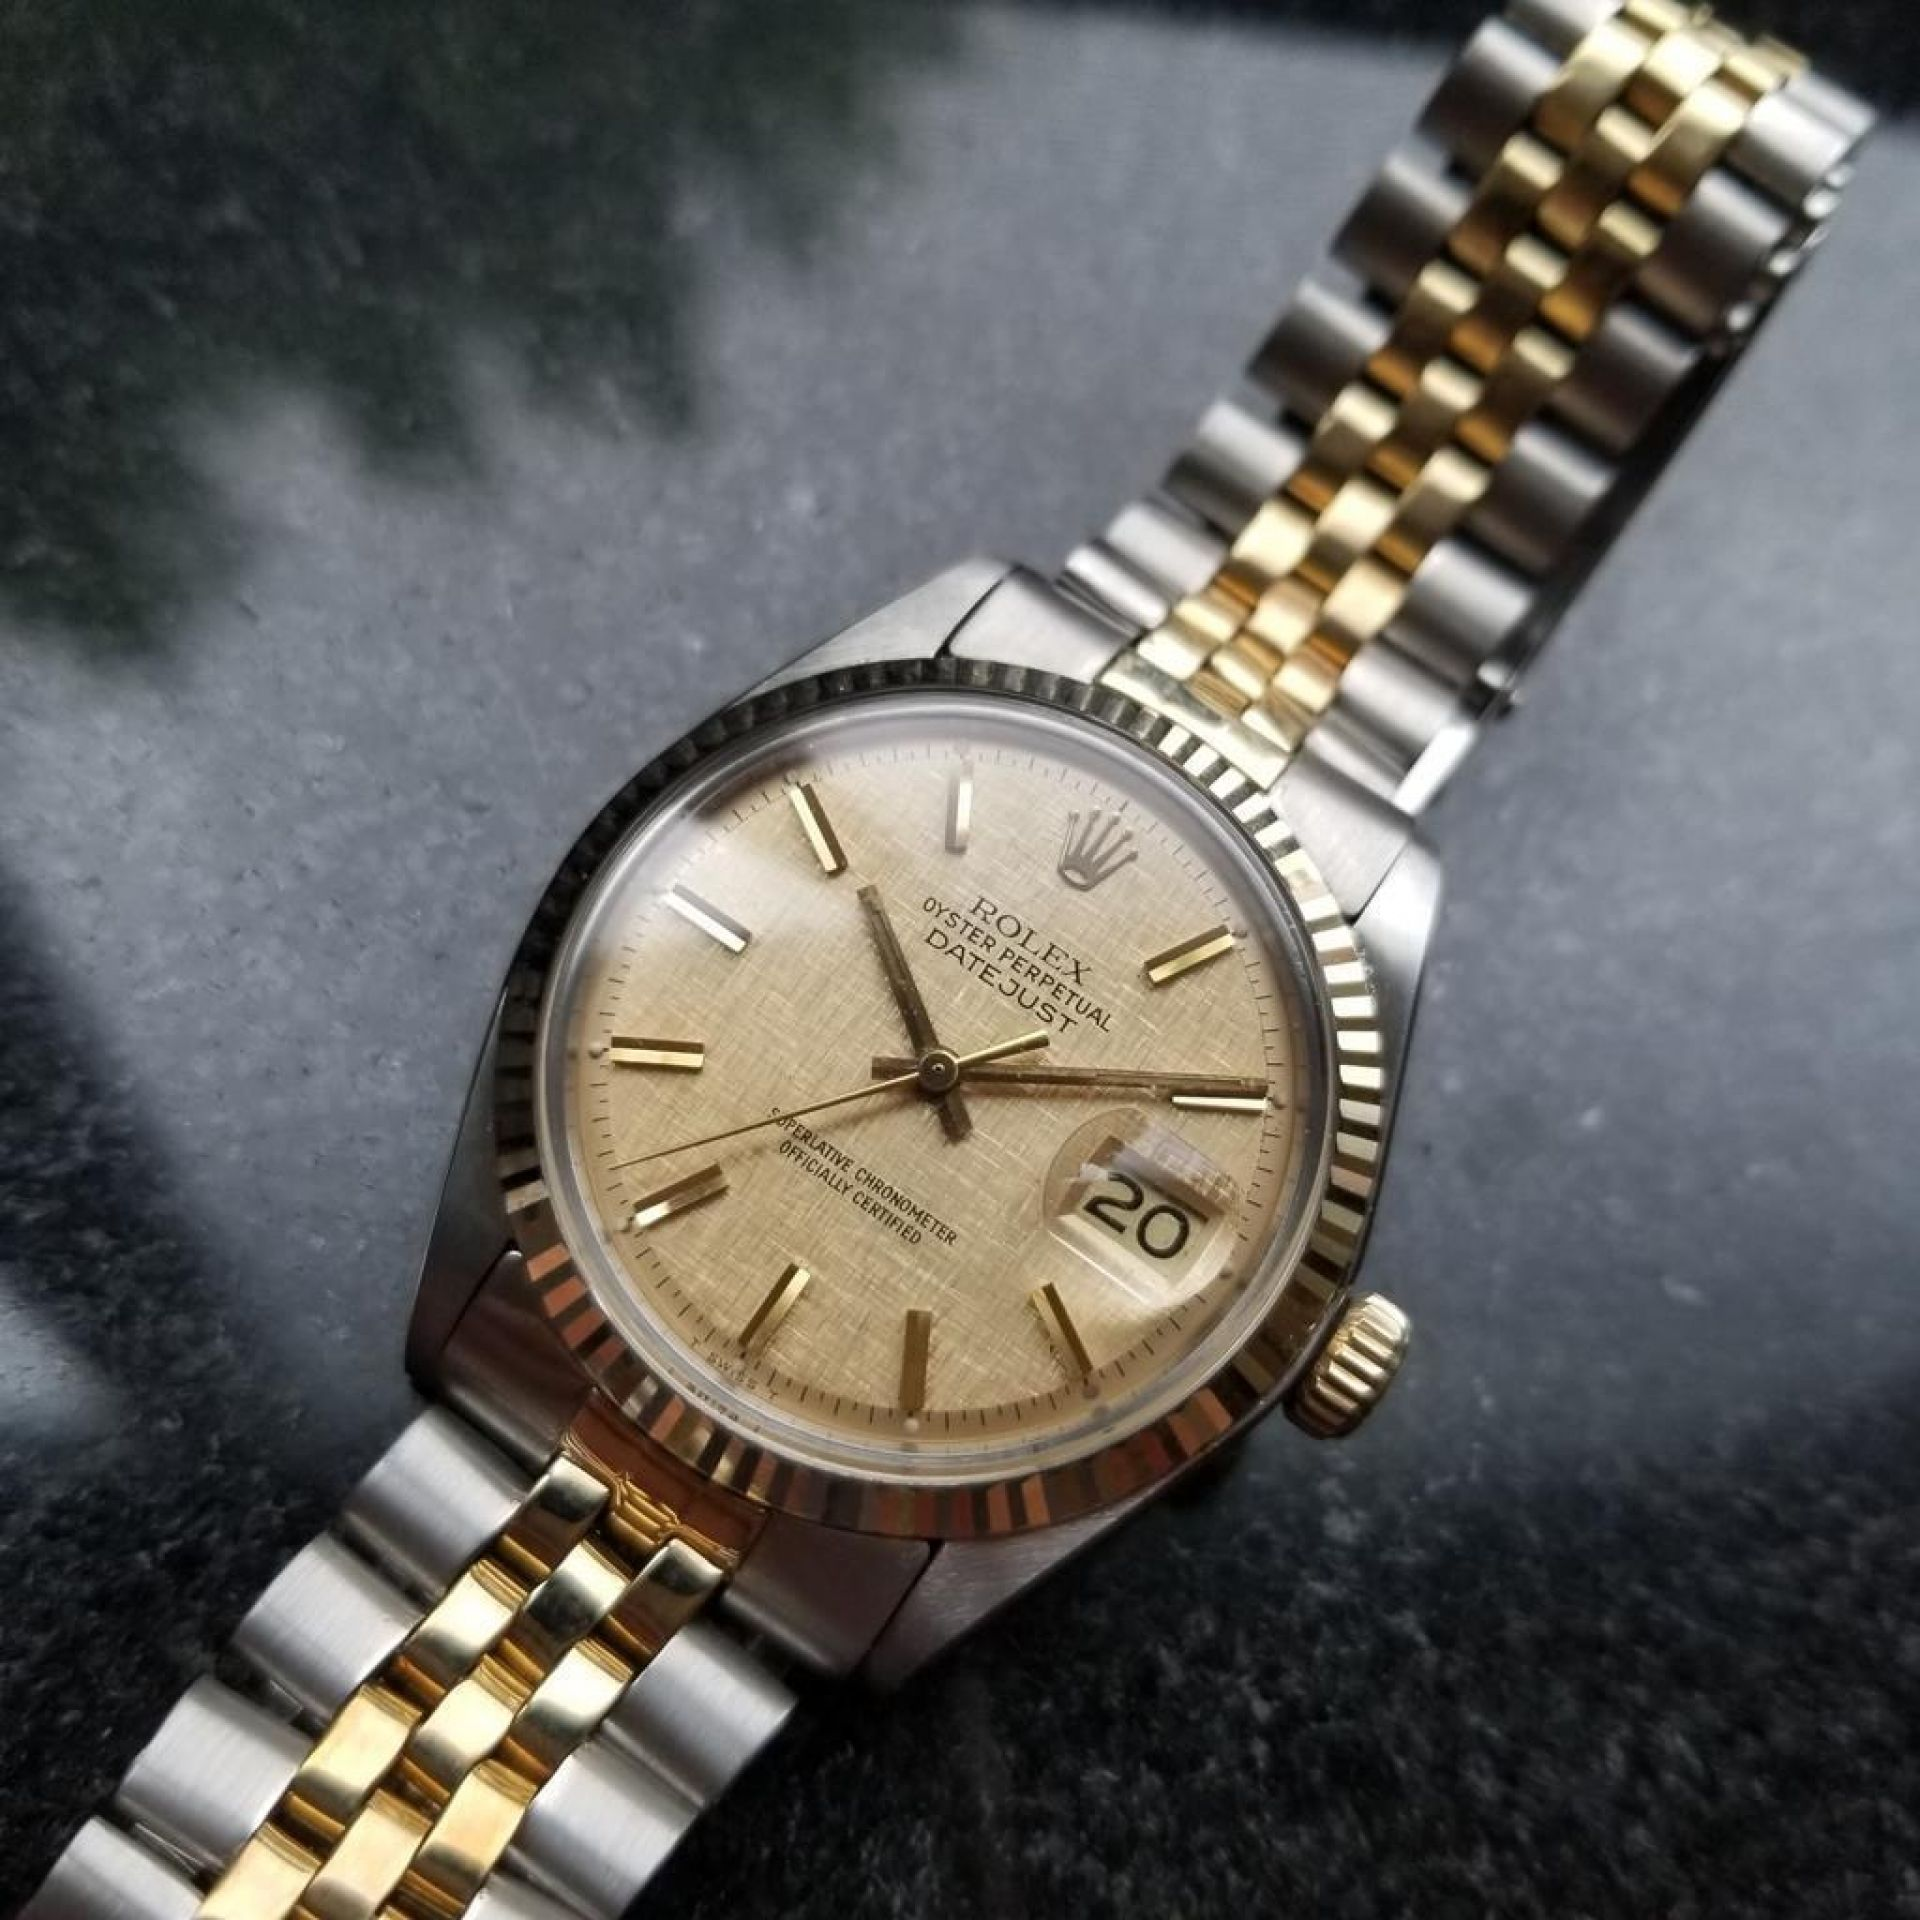 ROLEX MENS DATEJUST GOLD DIAL 18K STAINLESS STEEL WATCH T2K2